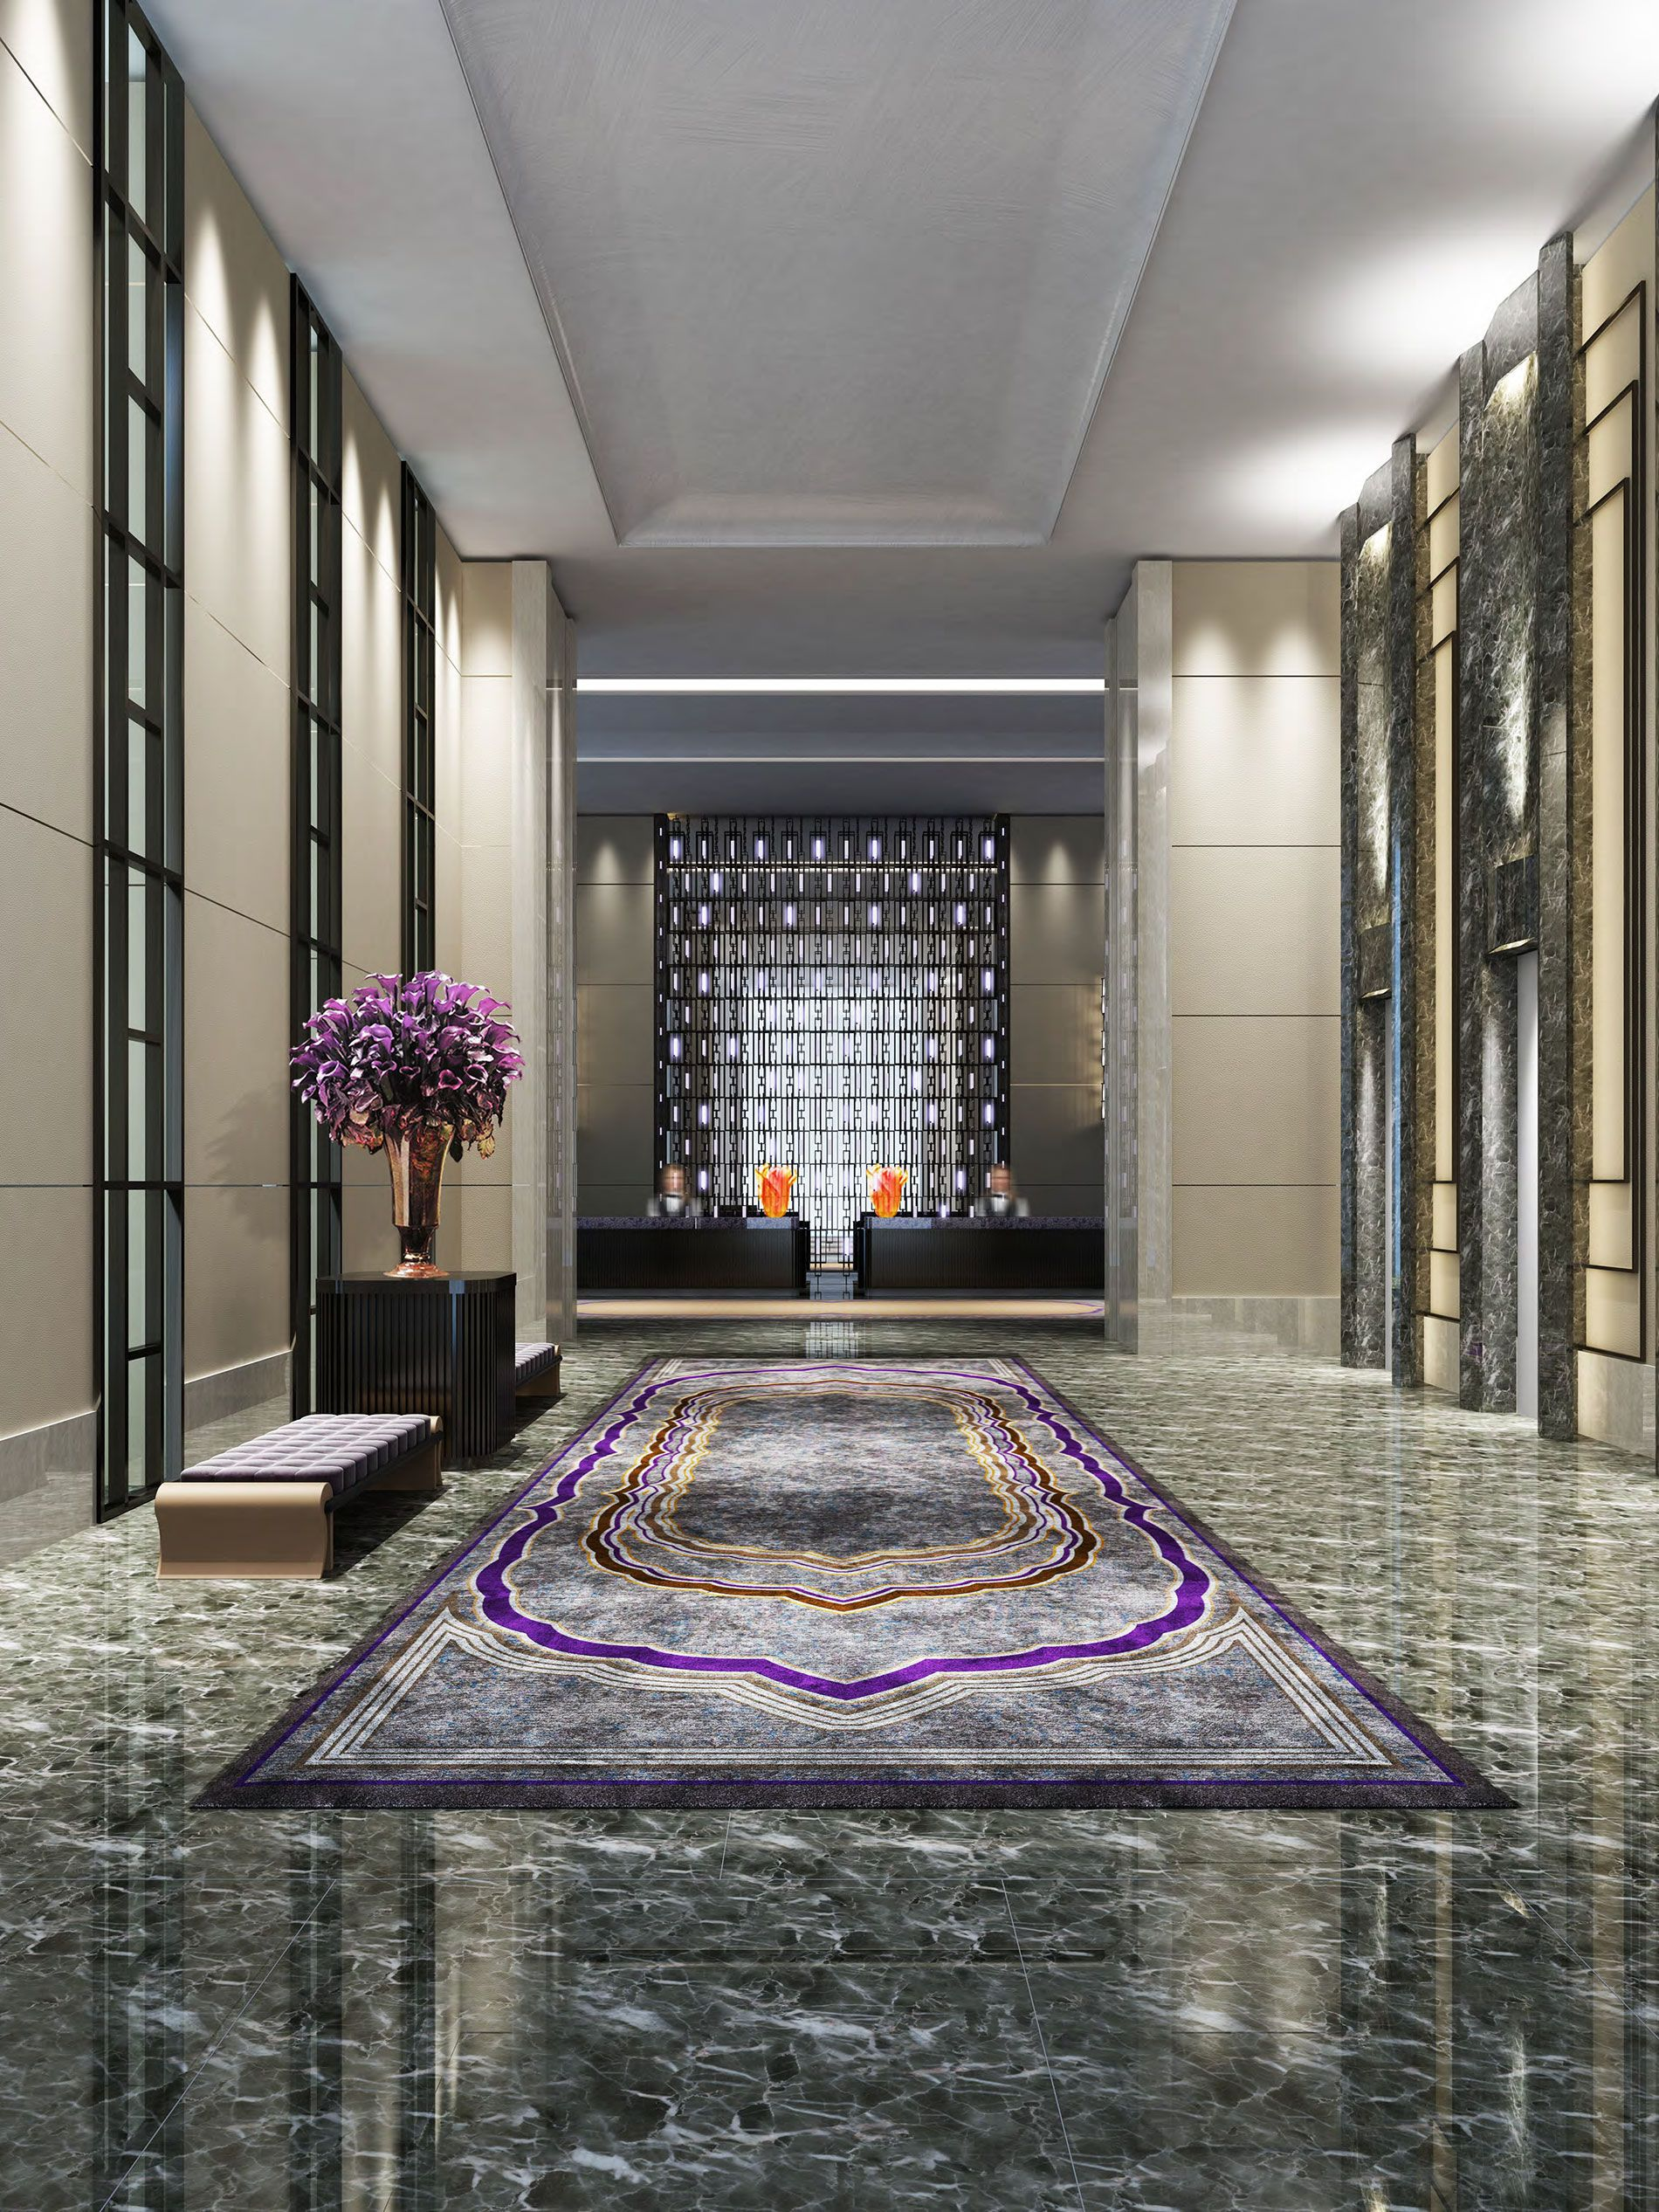 Hotel Lobby Interior Design hilton worldwide to open first conrad hotel in india | hotel lobby